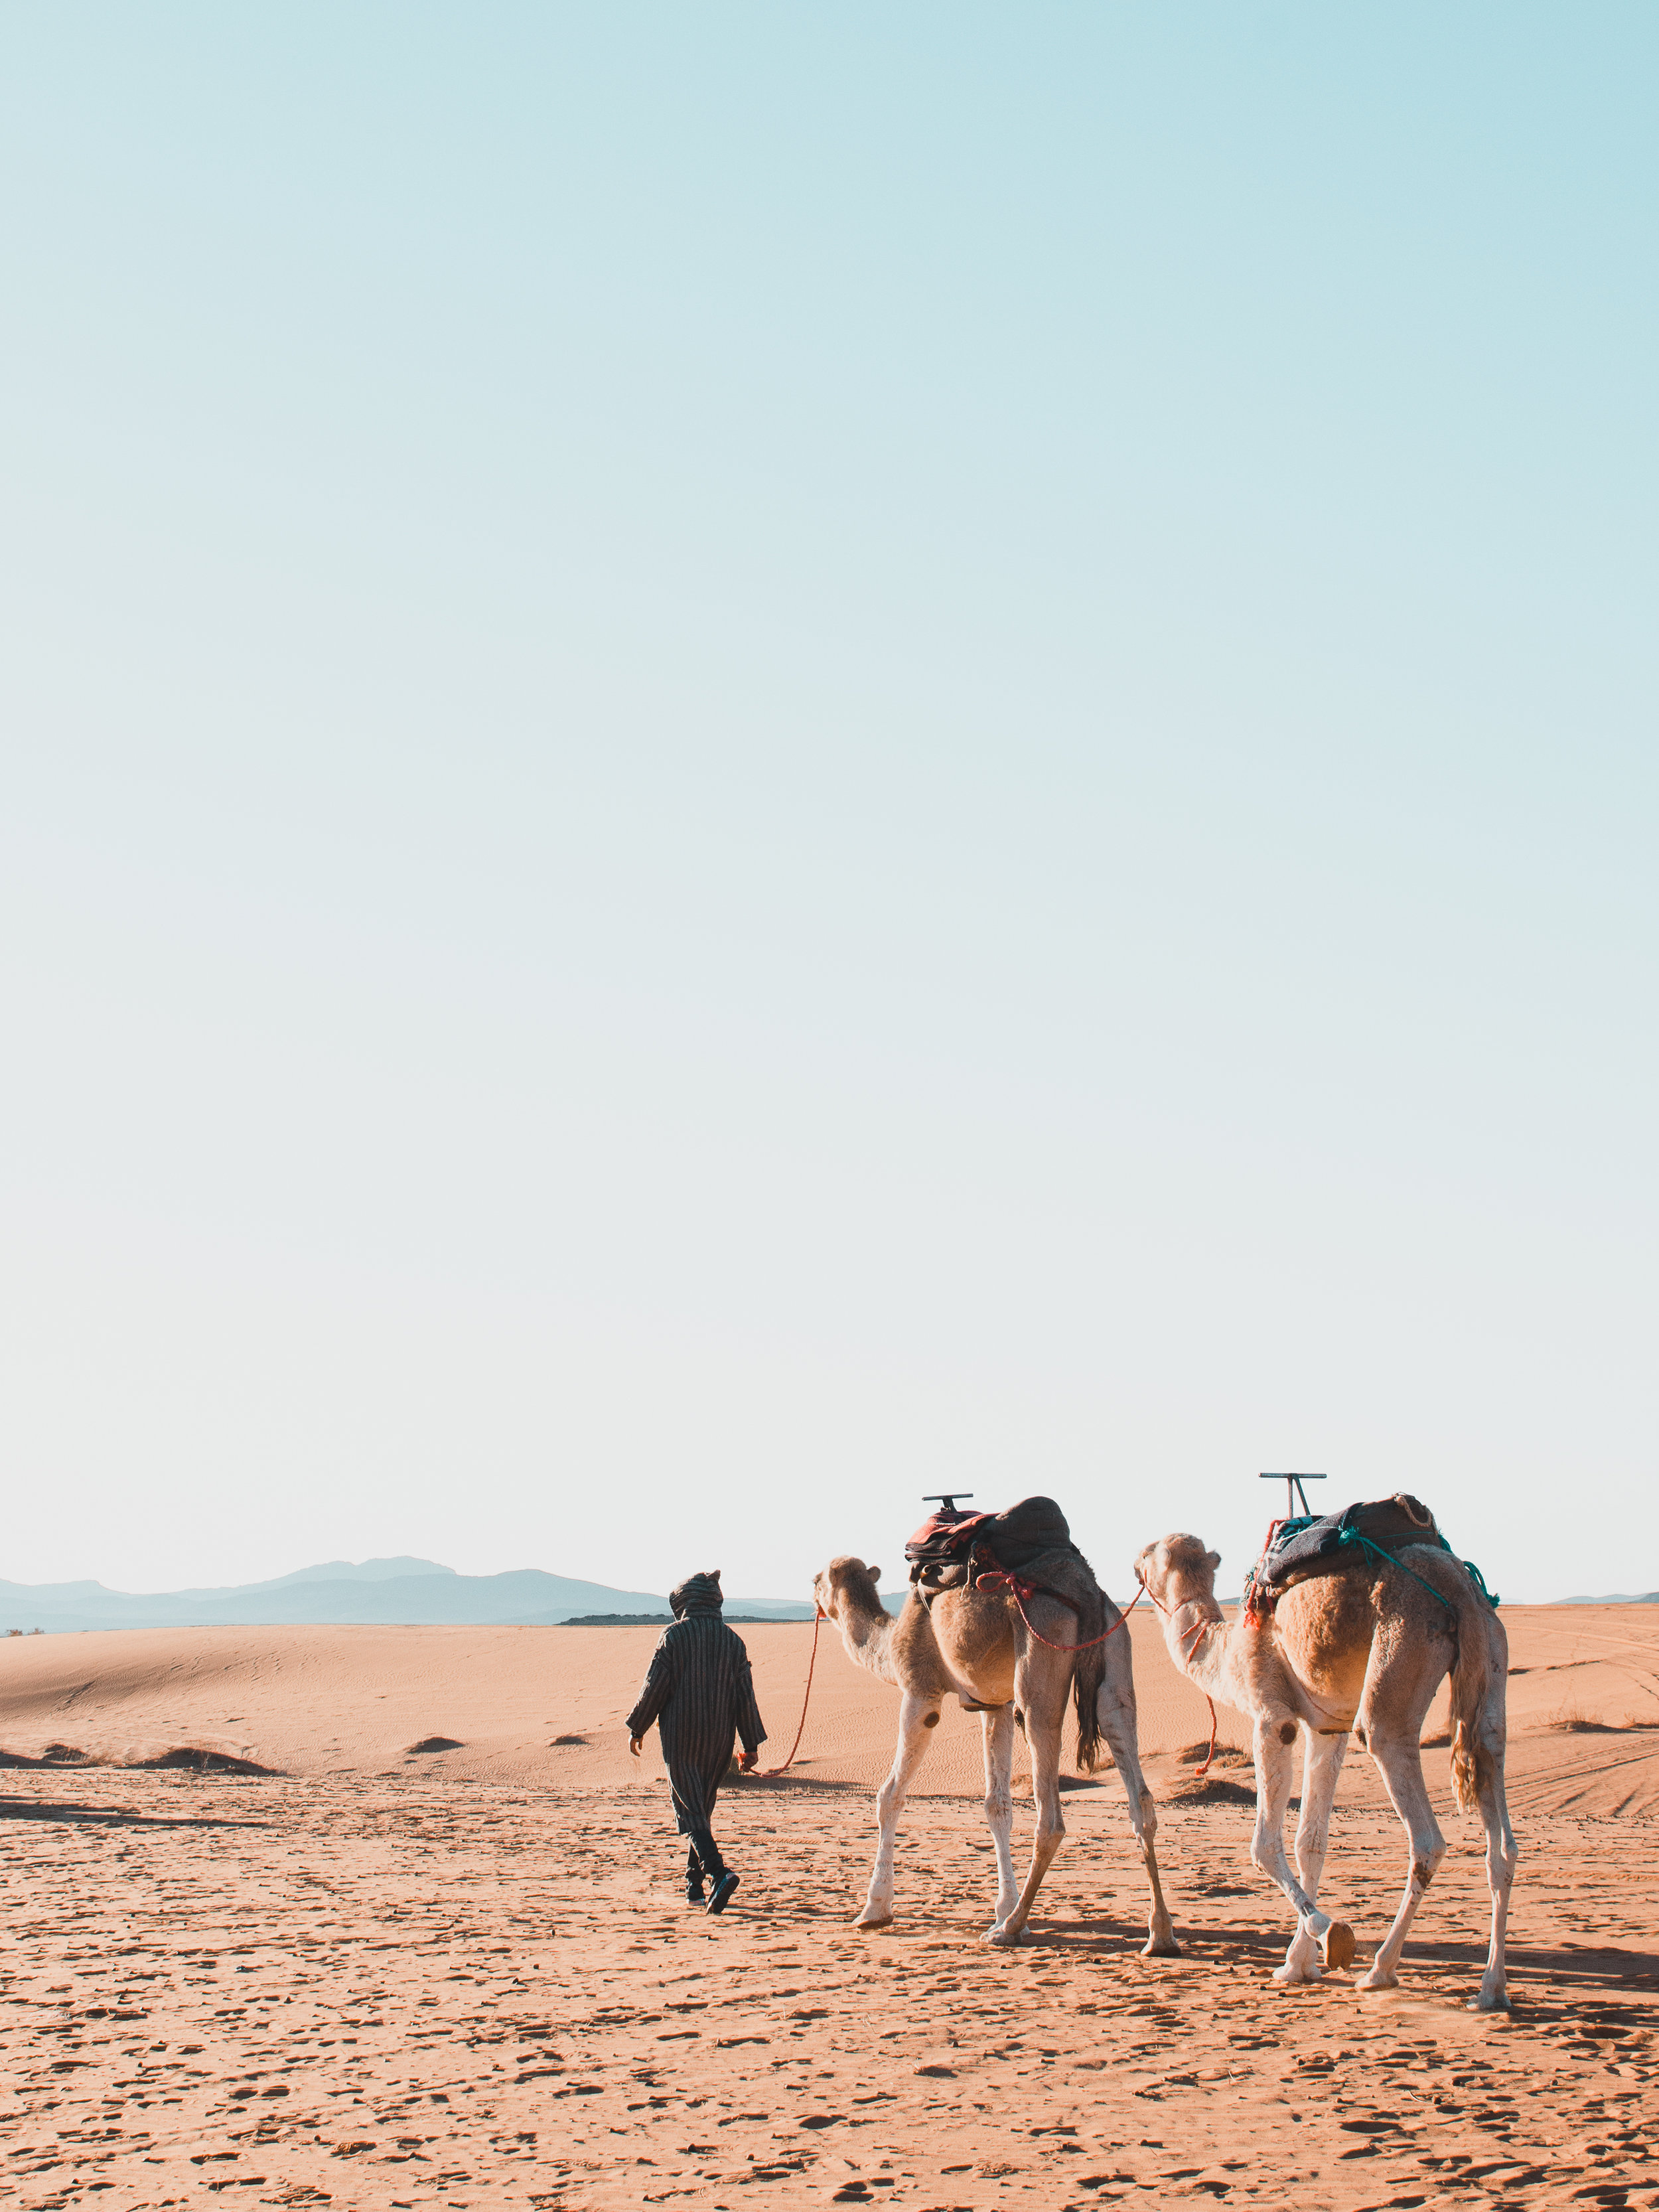 A Berber man leads his camels to food in the Sahara Desert